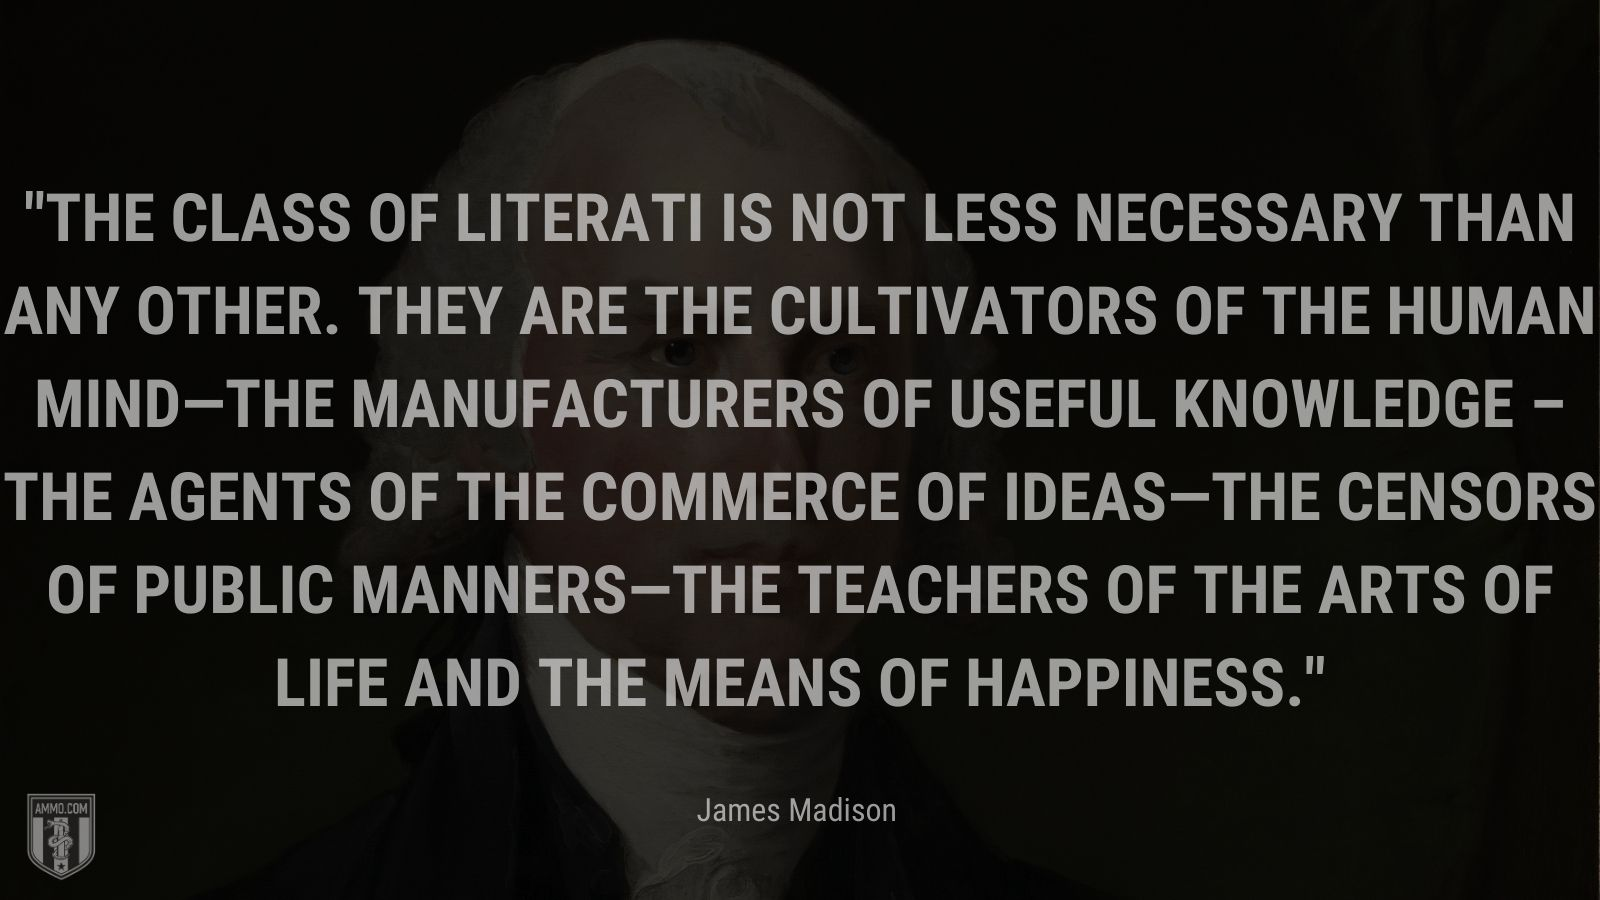 """""""The class of literati is not less necessary than any other. They are the cultivators of the human mind—the manufacturers of useful knowledge – the agents of the commerce of ideas—the censors of public manners—the teachers of the arts of life and the means of happiness."""" - James Madison"""